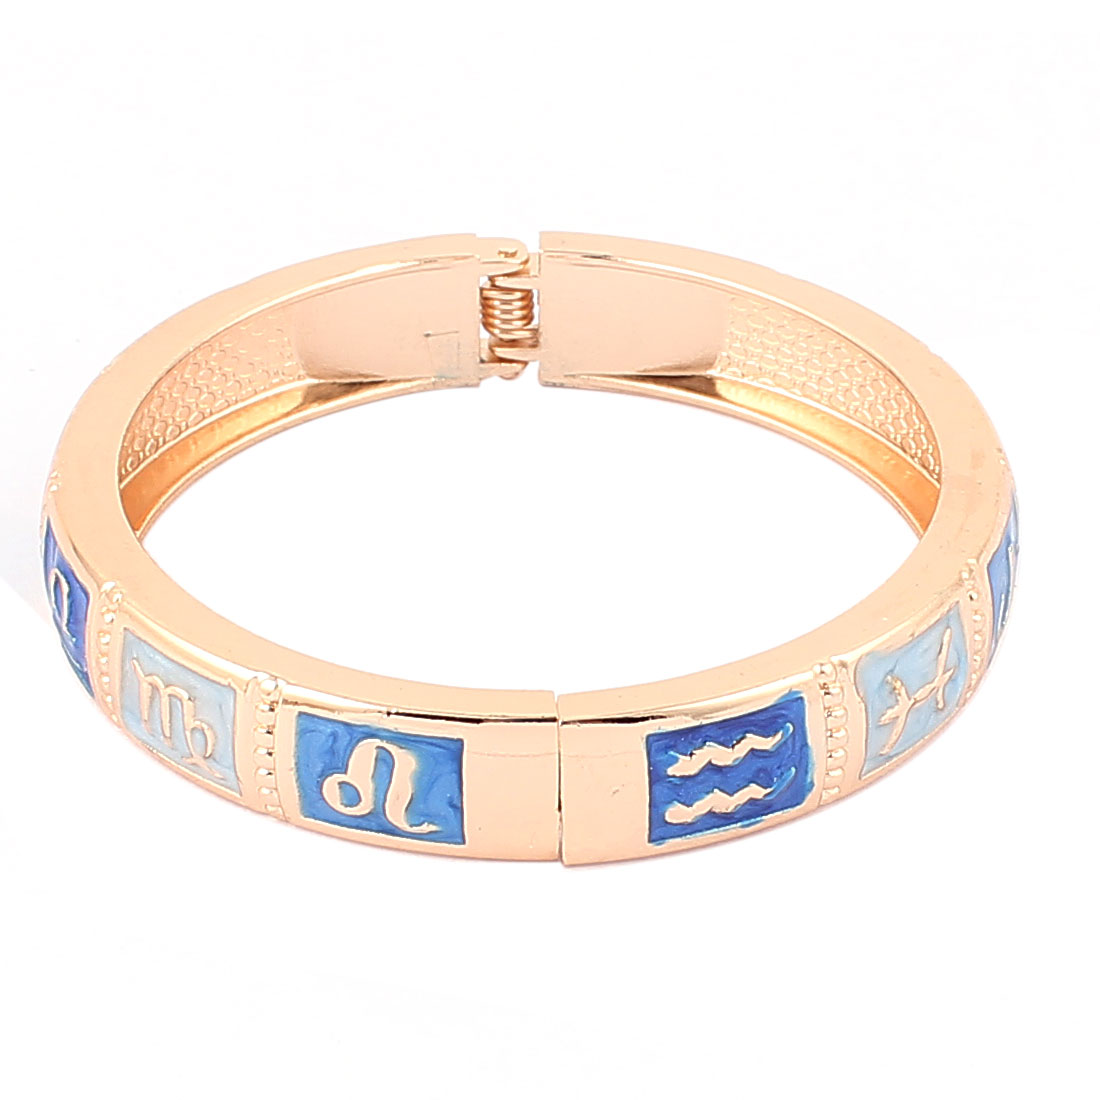 "Round Wrist Gold Tone Metal Blue 12 Constellations Pattern Bracelet Enamel Bangle 0.4"" Width"